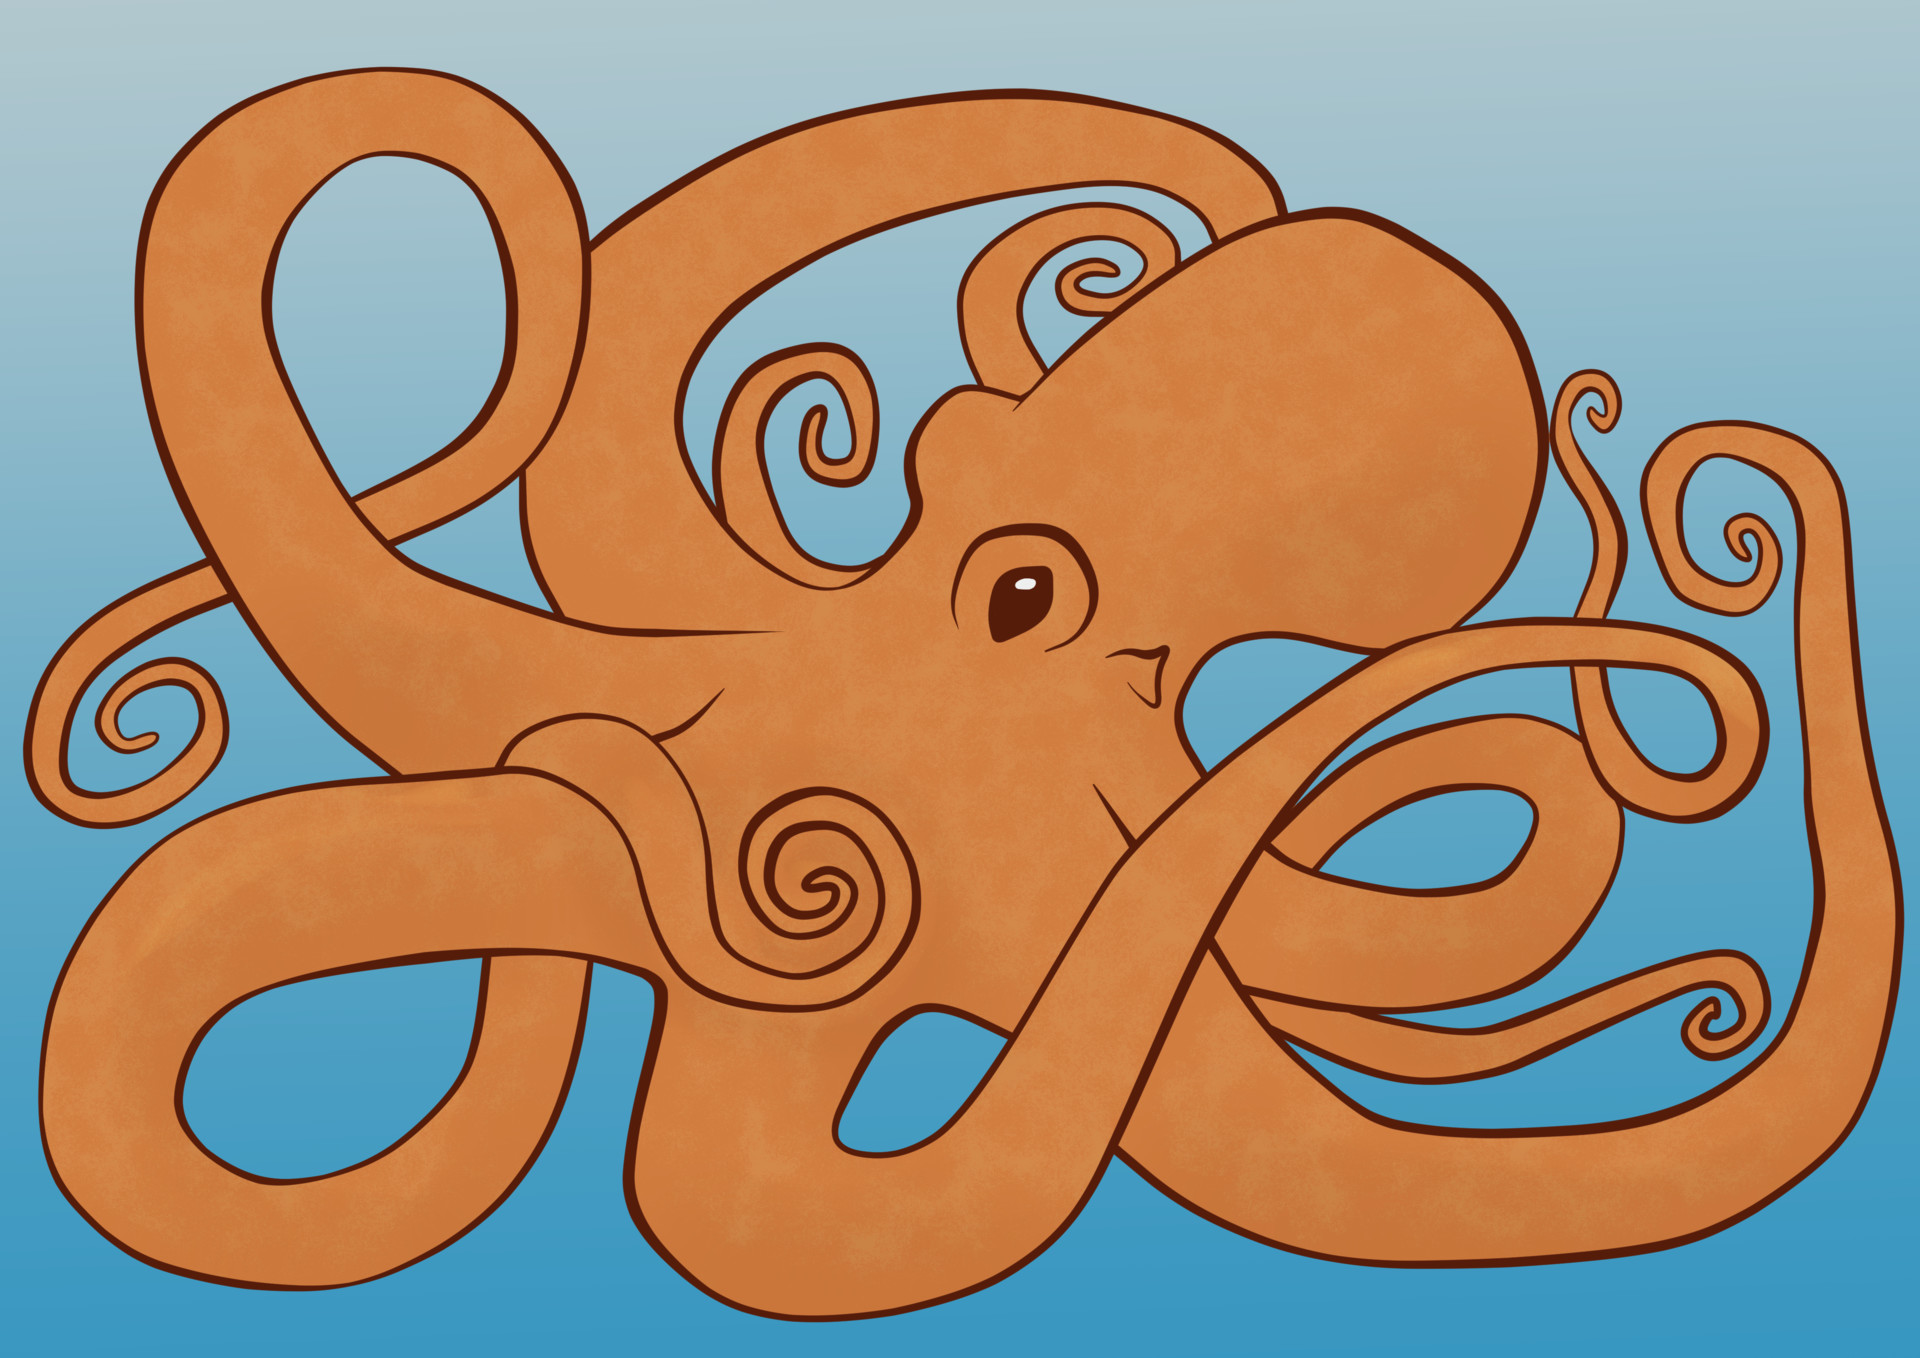 Jessica olney octopus coloring page colored